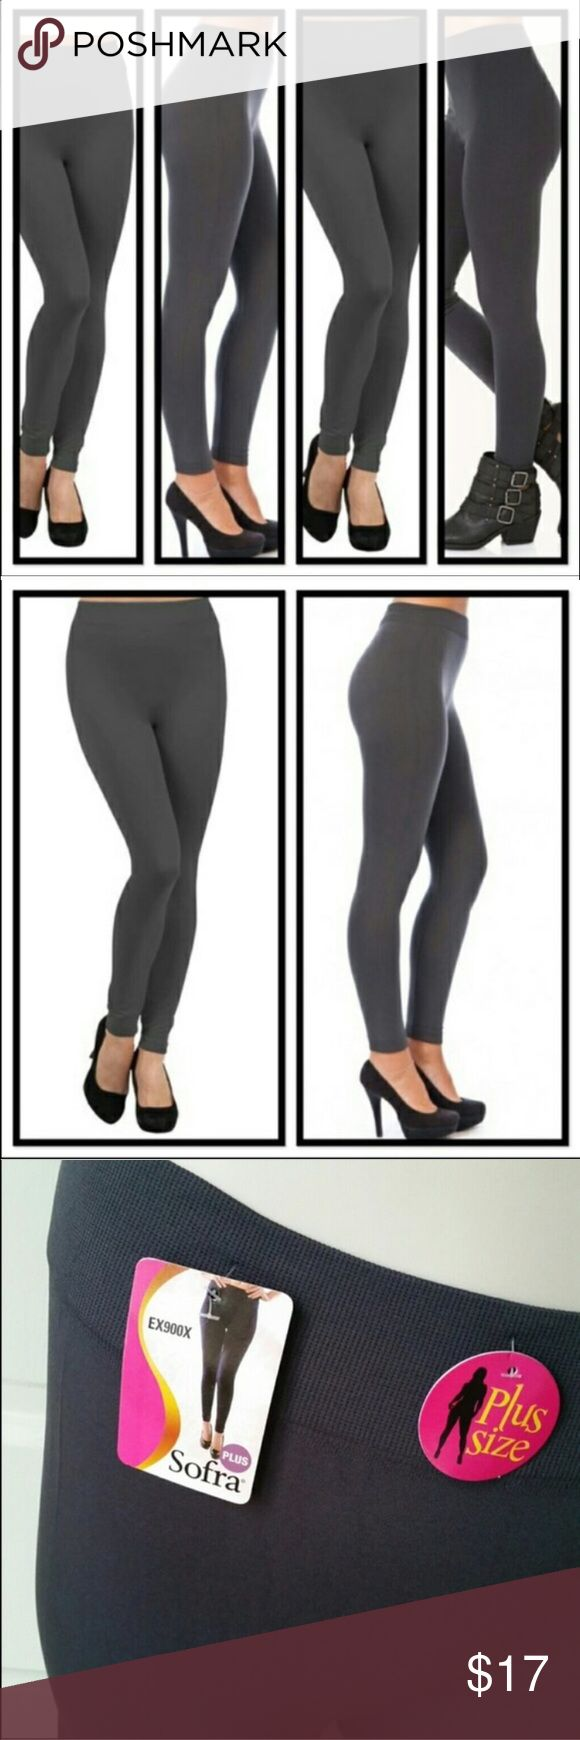 Brand New Plus Size Charcoal Gray Leggings Brand new with tags plus size leggings by Sofra. One size fits most from size L-3x, but in my opinion, these will fit best up to a size 2x. Thick and nice and very stretchy -- not see-through like a lot of leggings. Perfect this winter with all your dresses and oversized tops, or great for just lounging around the home. Sofra Pants Leggings